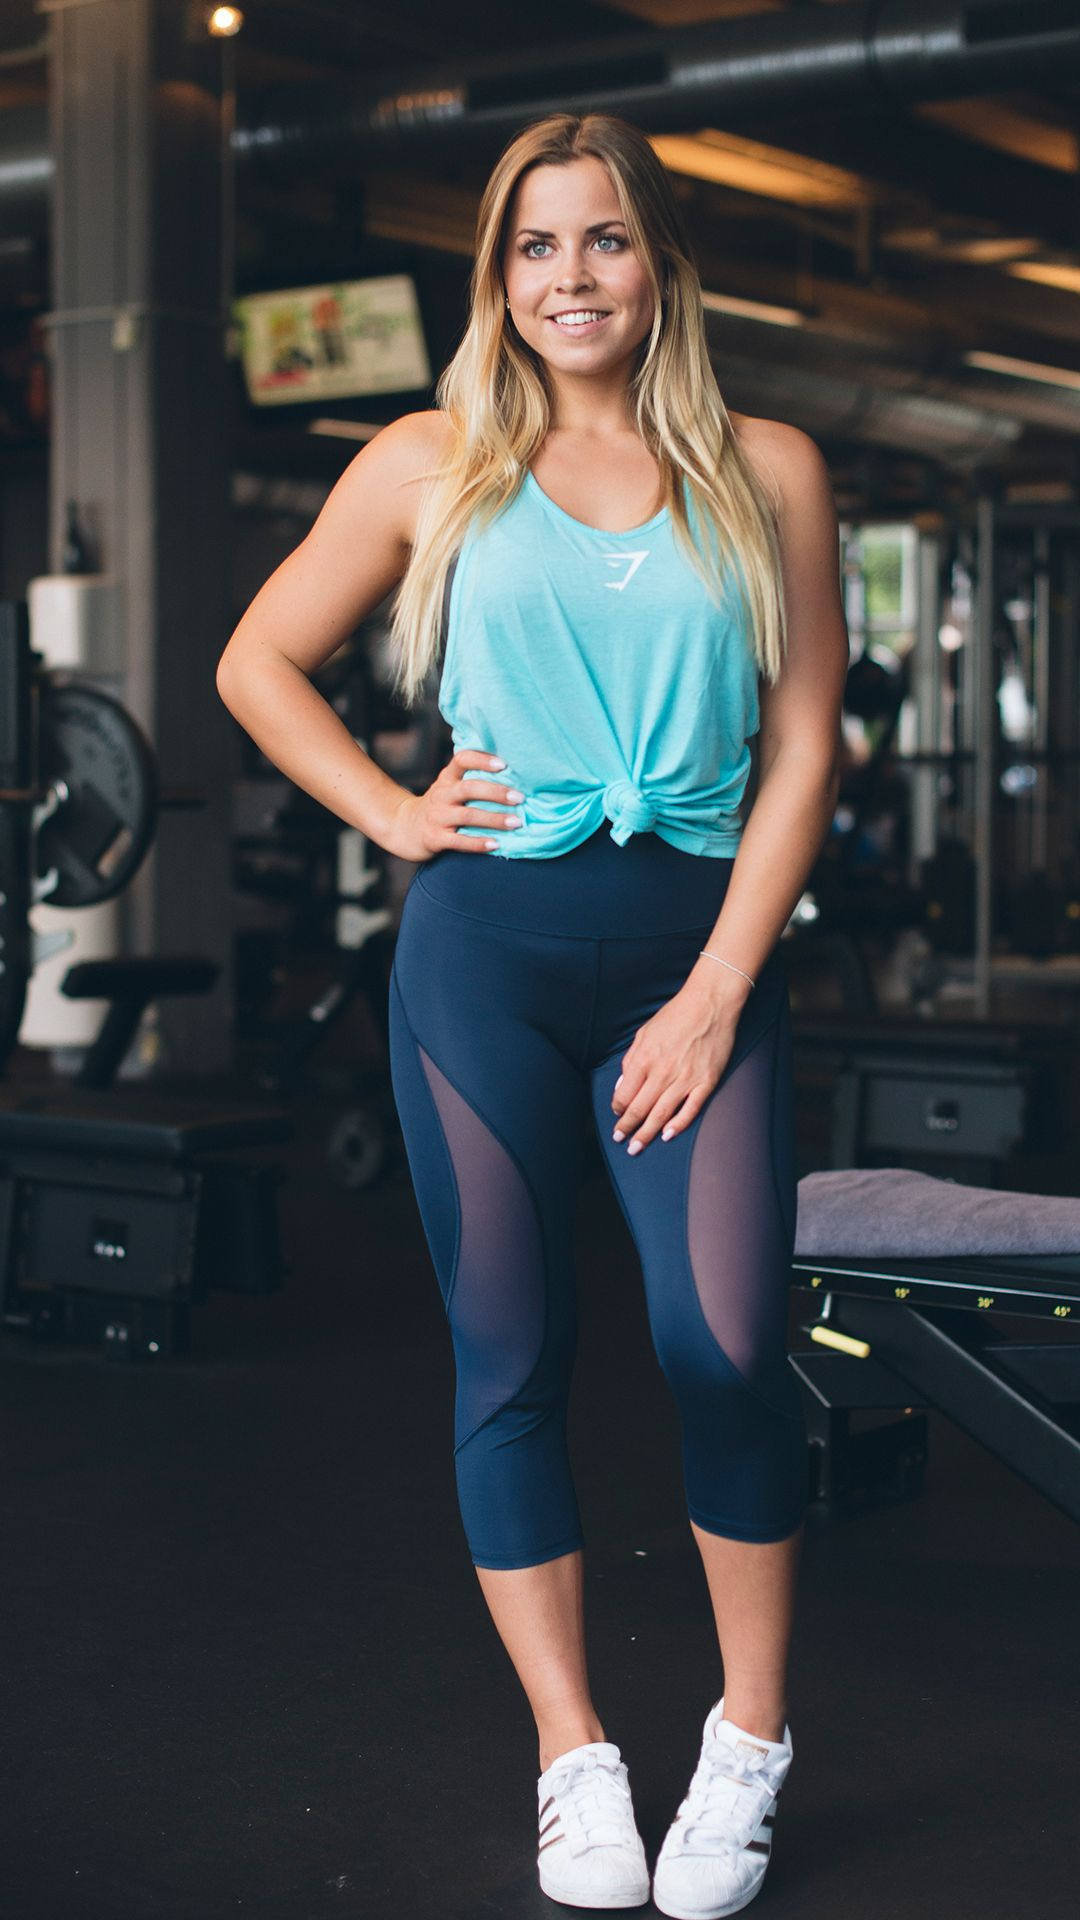 Pin On Workout Fitzzz